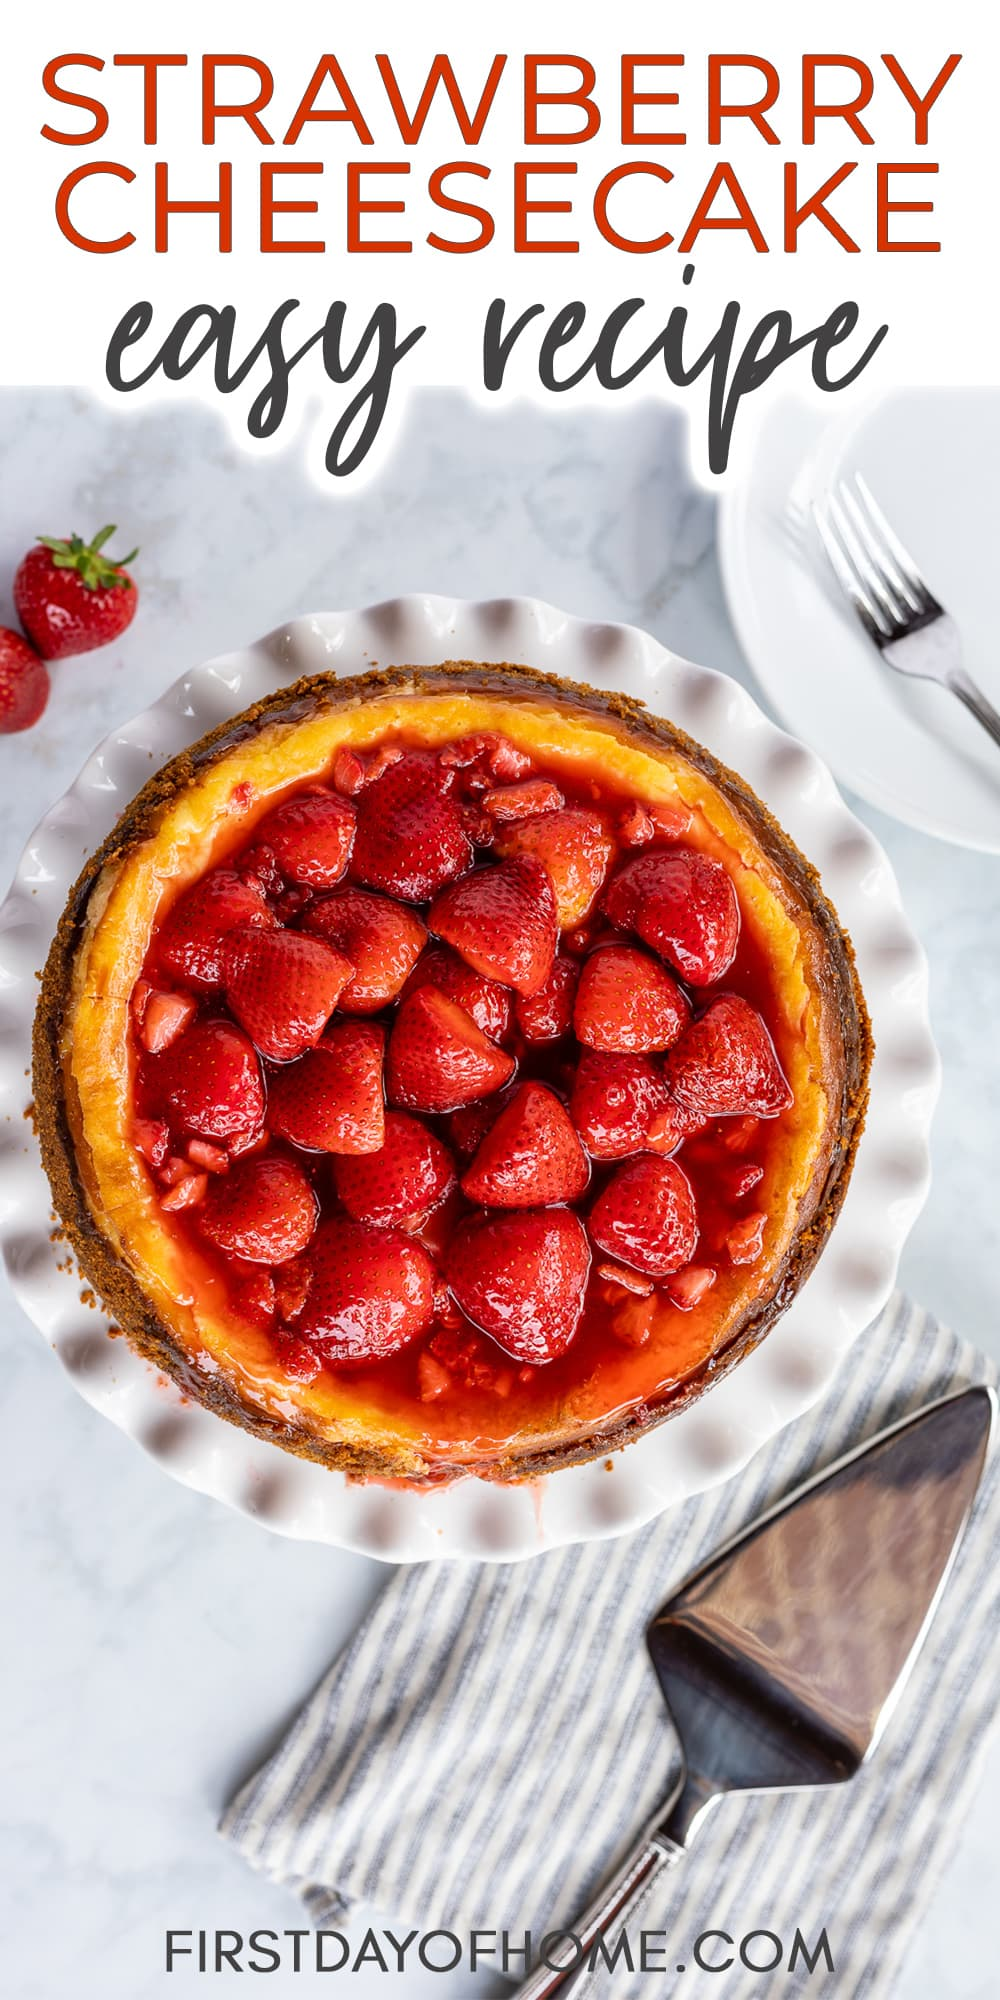 """Strawberry cheesecake topped with strawberry sauce with text reading """"Strawberry Cheesecake Easy Recipe"""""""